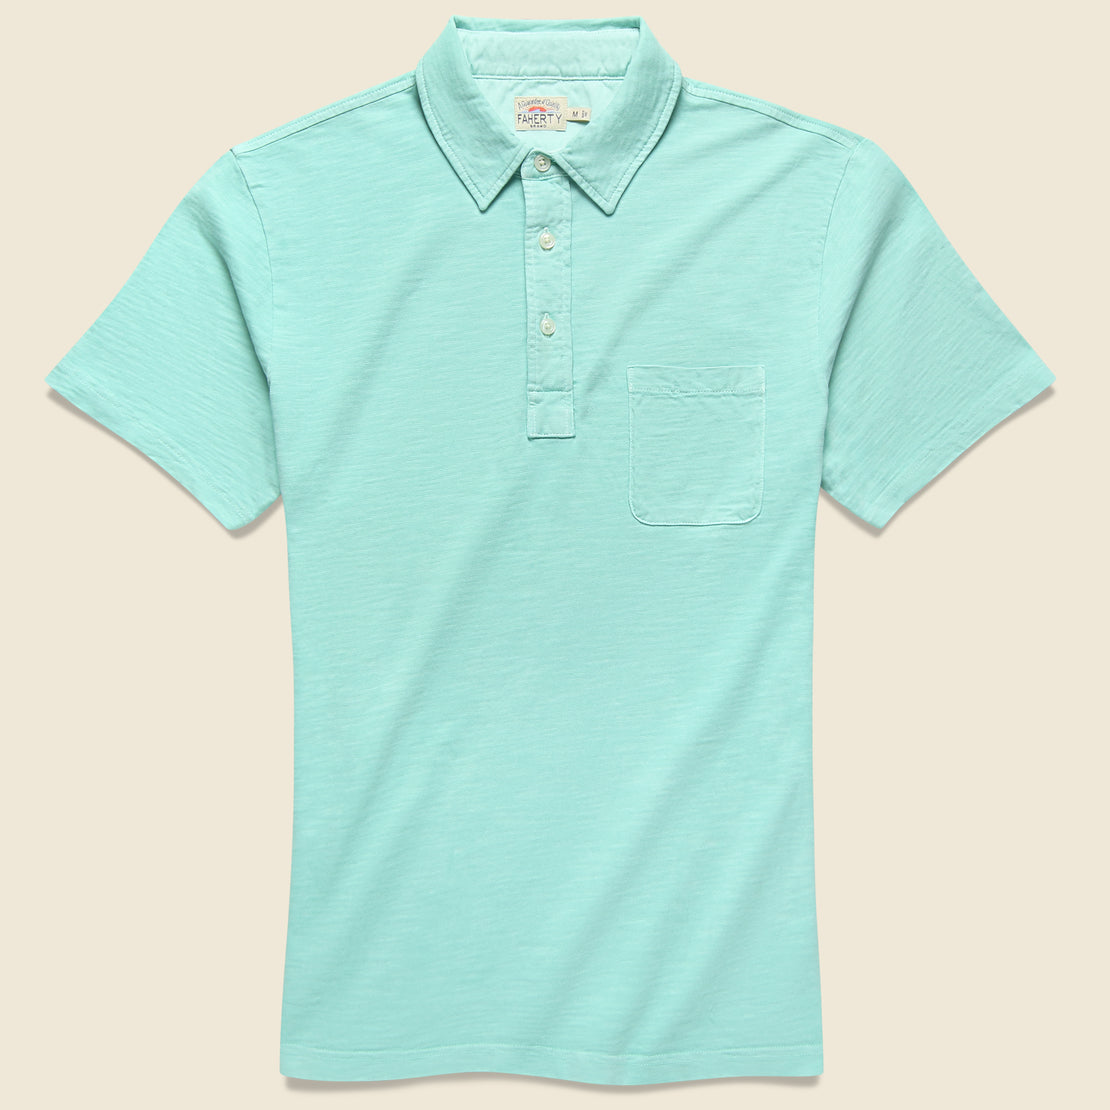 Faherty Garment Dyed Polo Shirt - Water Blue